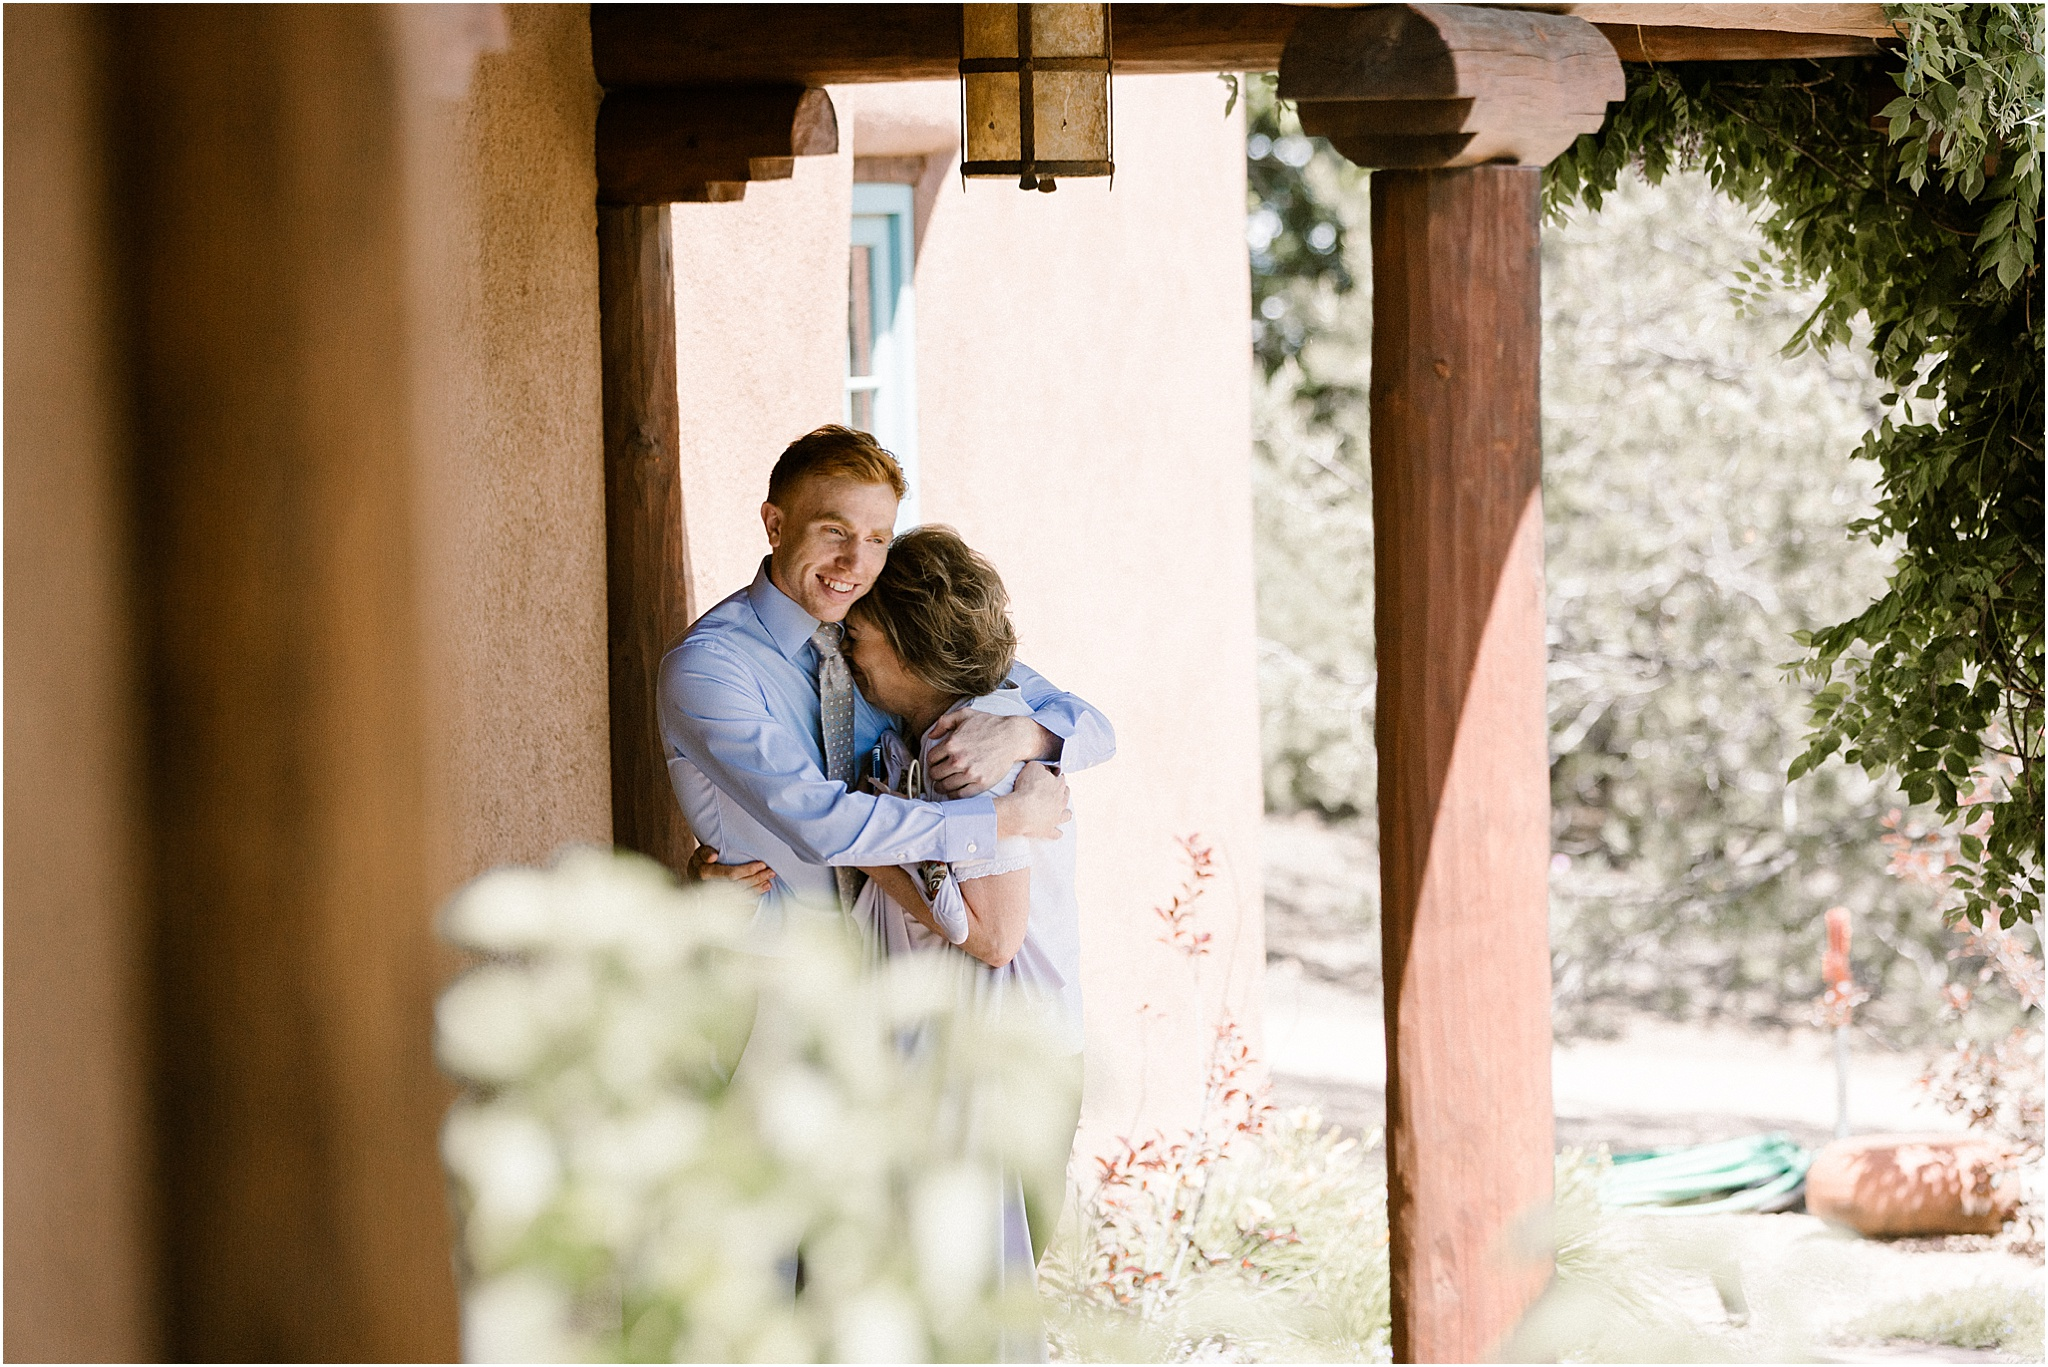 AMELIA_JASON_SANTA FE_ WEDDING_BLUE ROSE PHOTOGRAPHY28